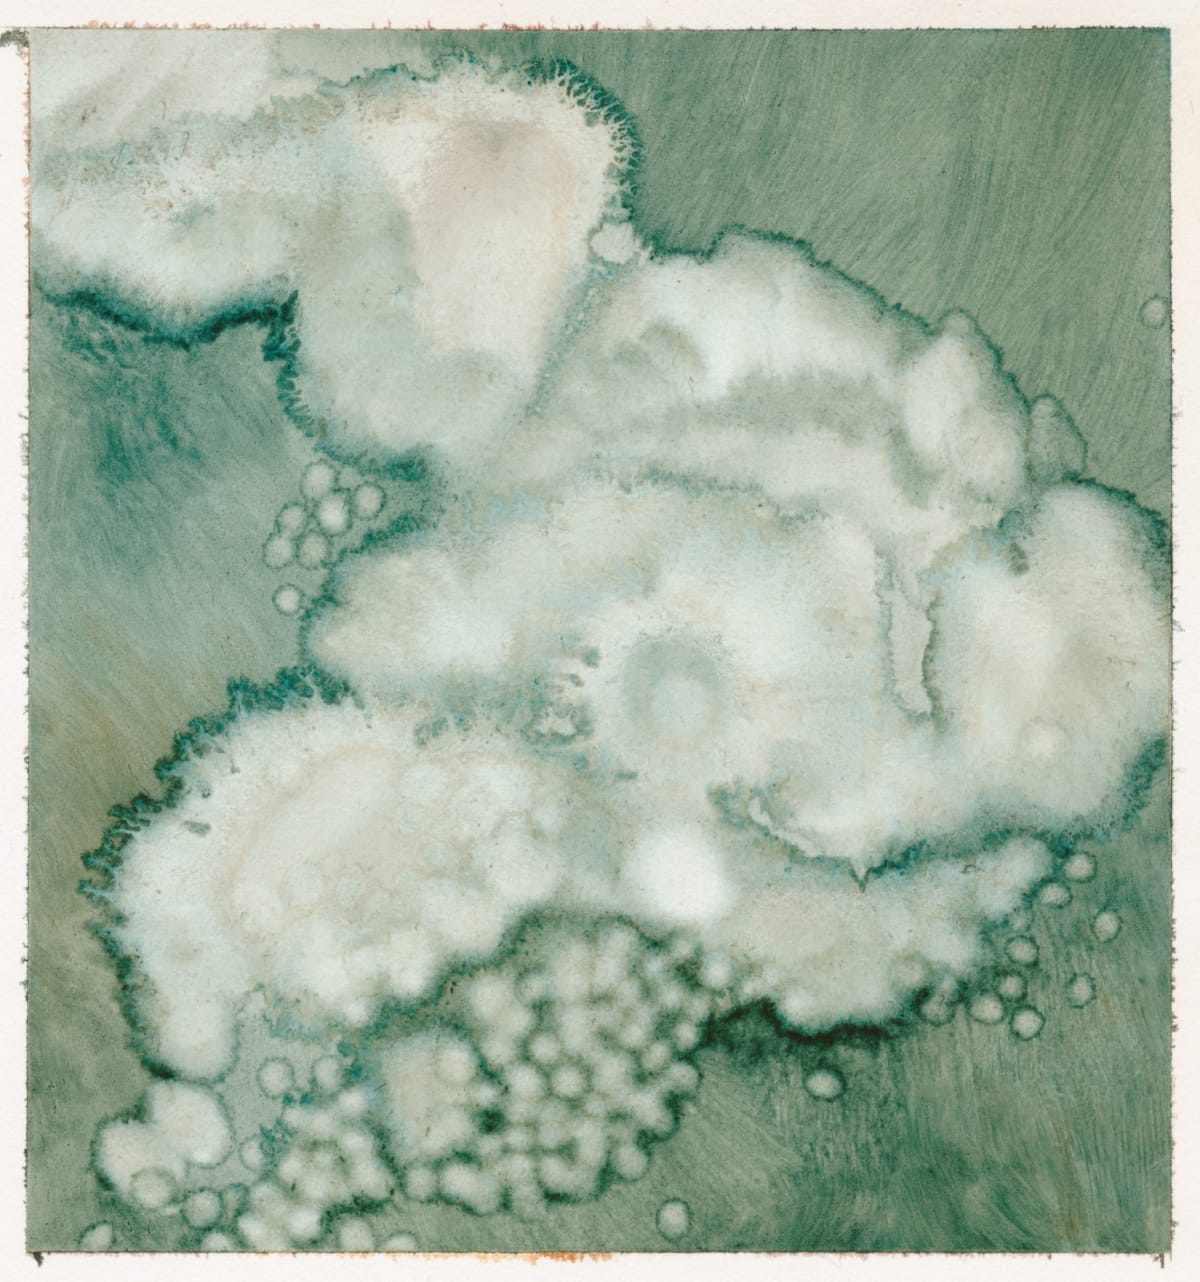 Sarah Biggs, Little cloud, 2019